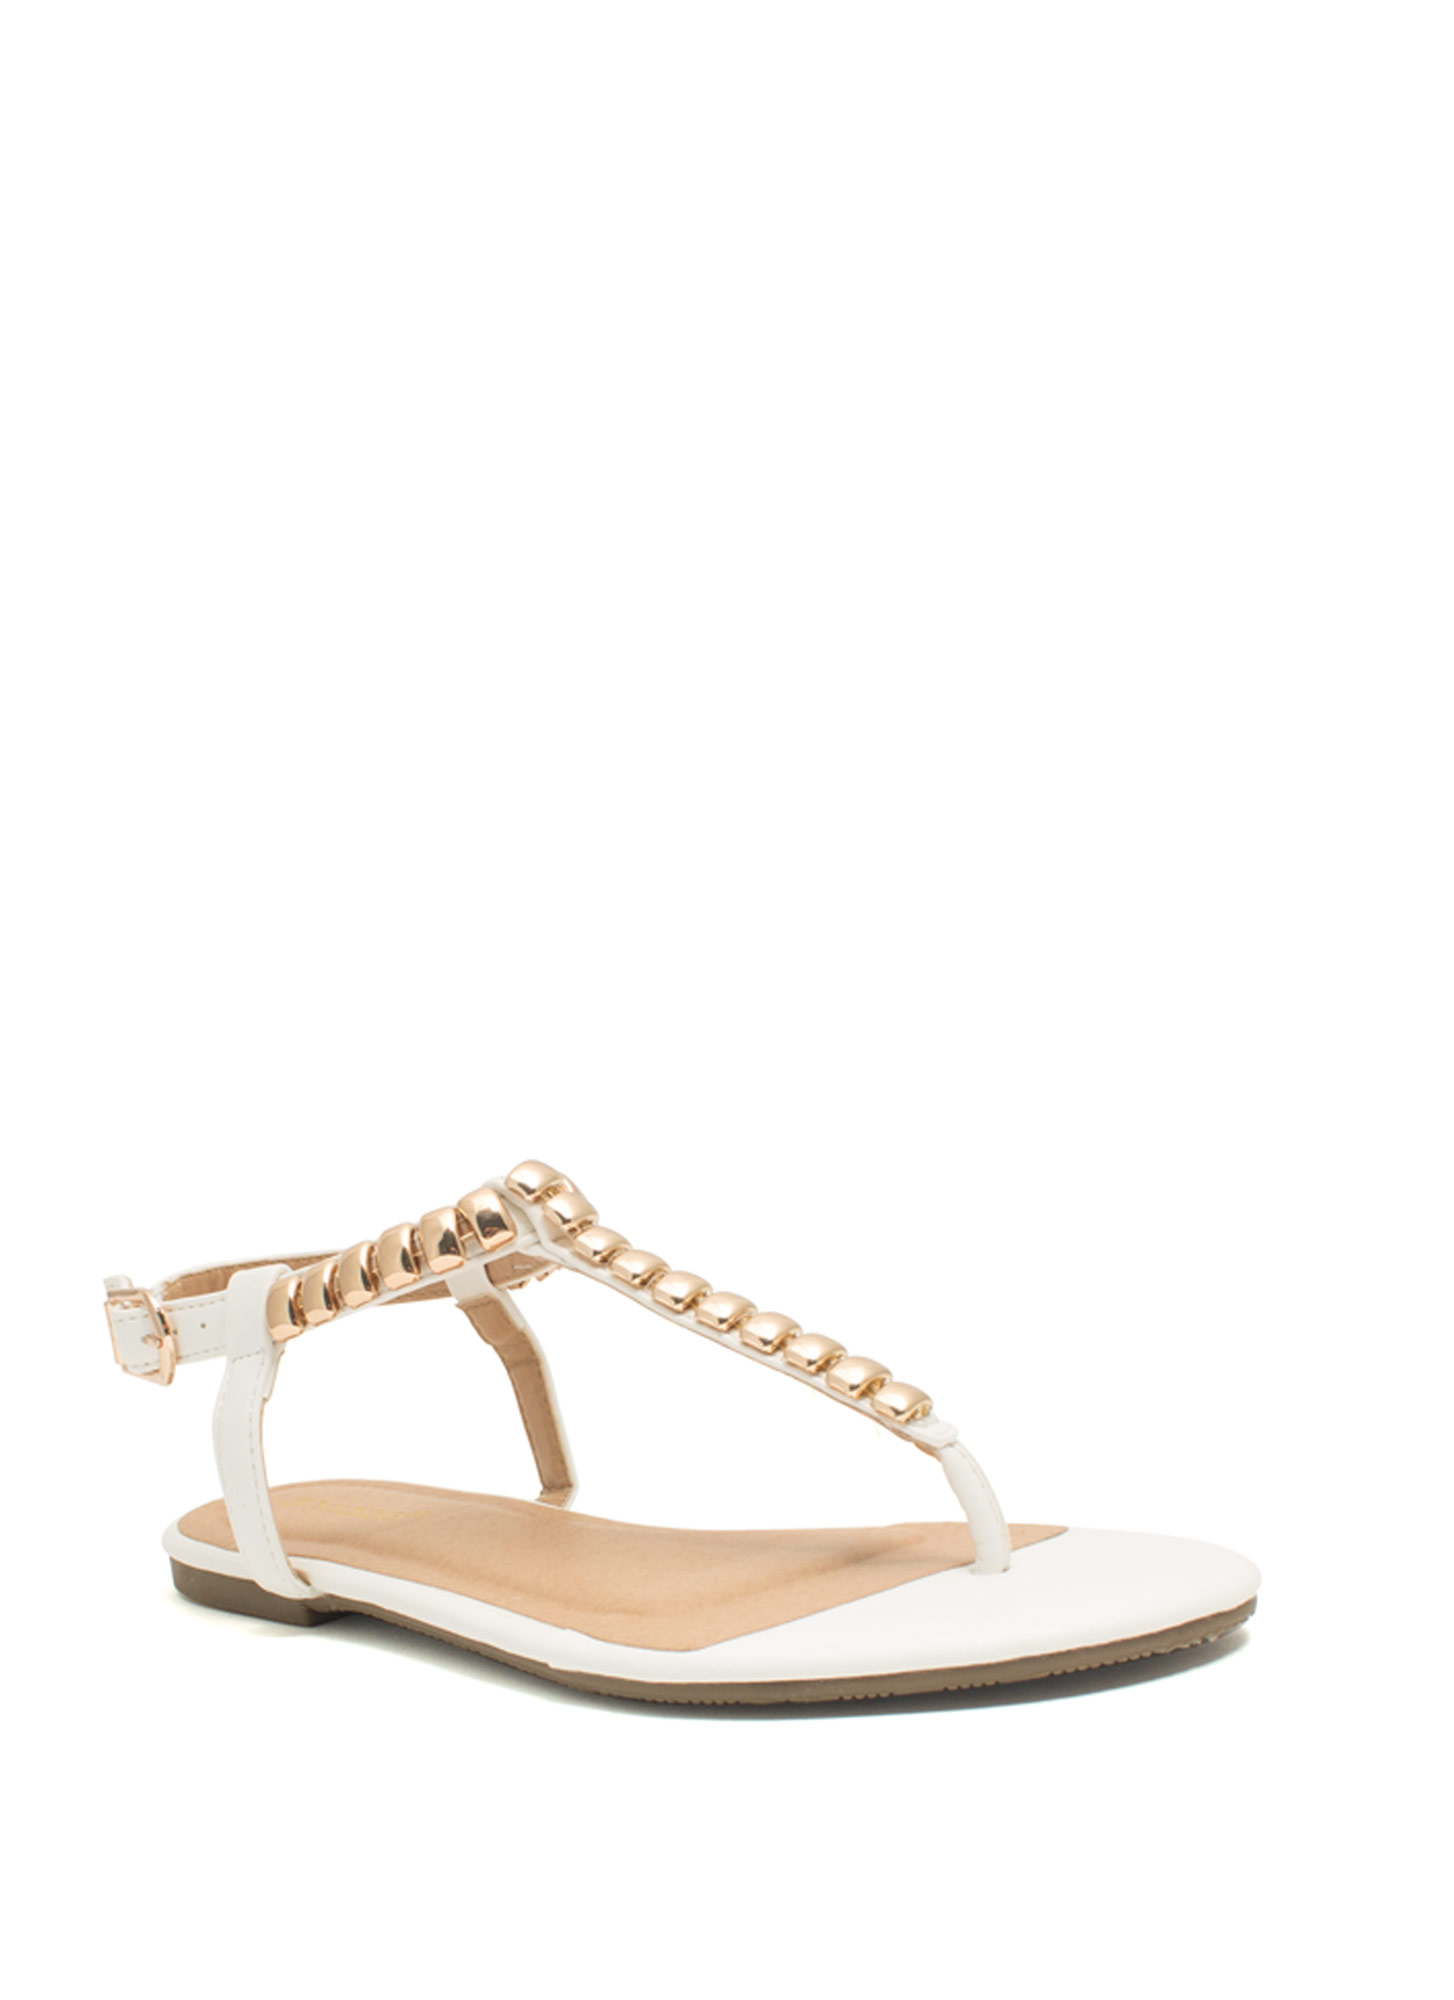 Tile Me Something Good Thong Sandals WHITE